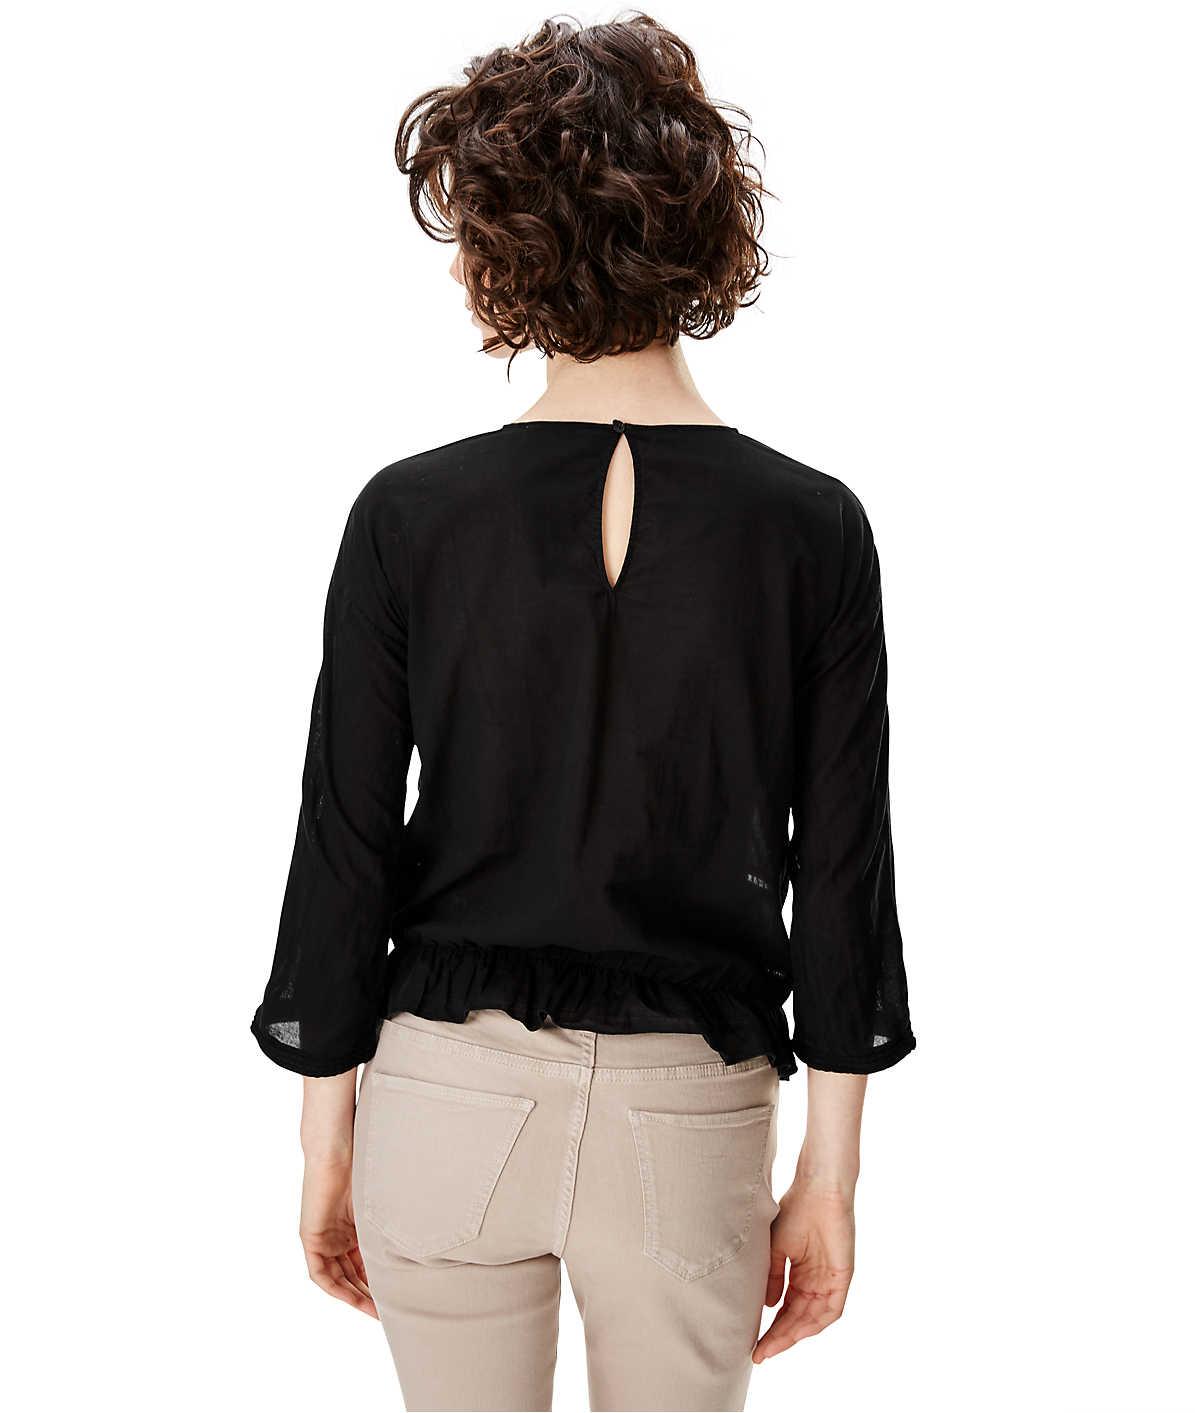 Blouse S1162502 from liebeskind